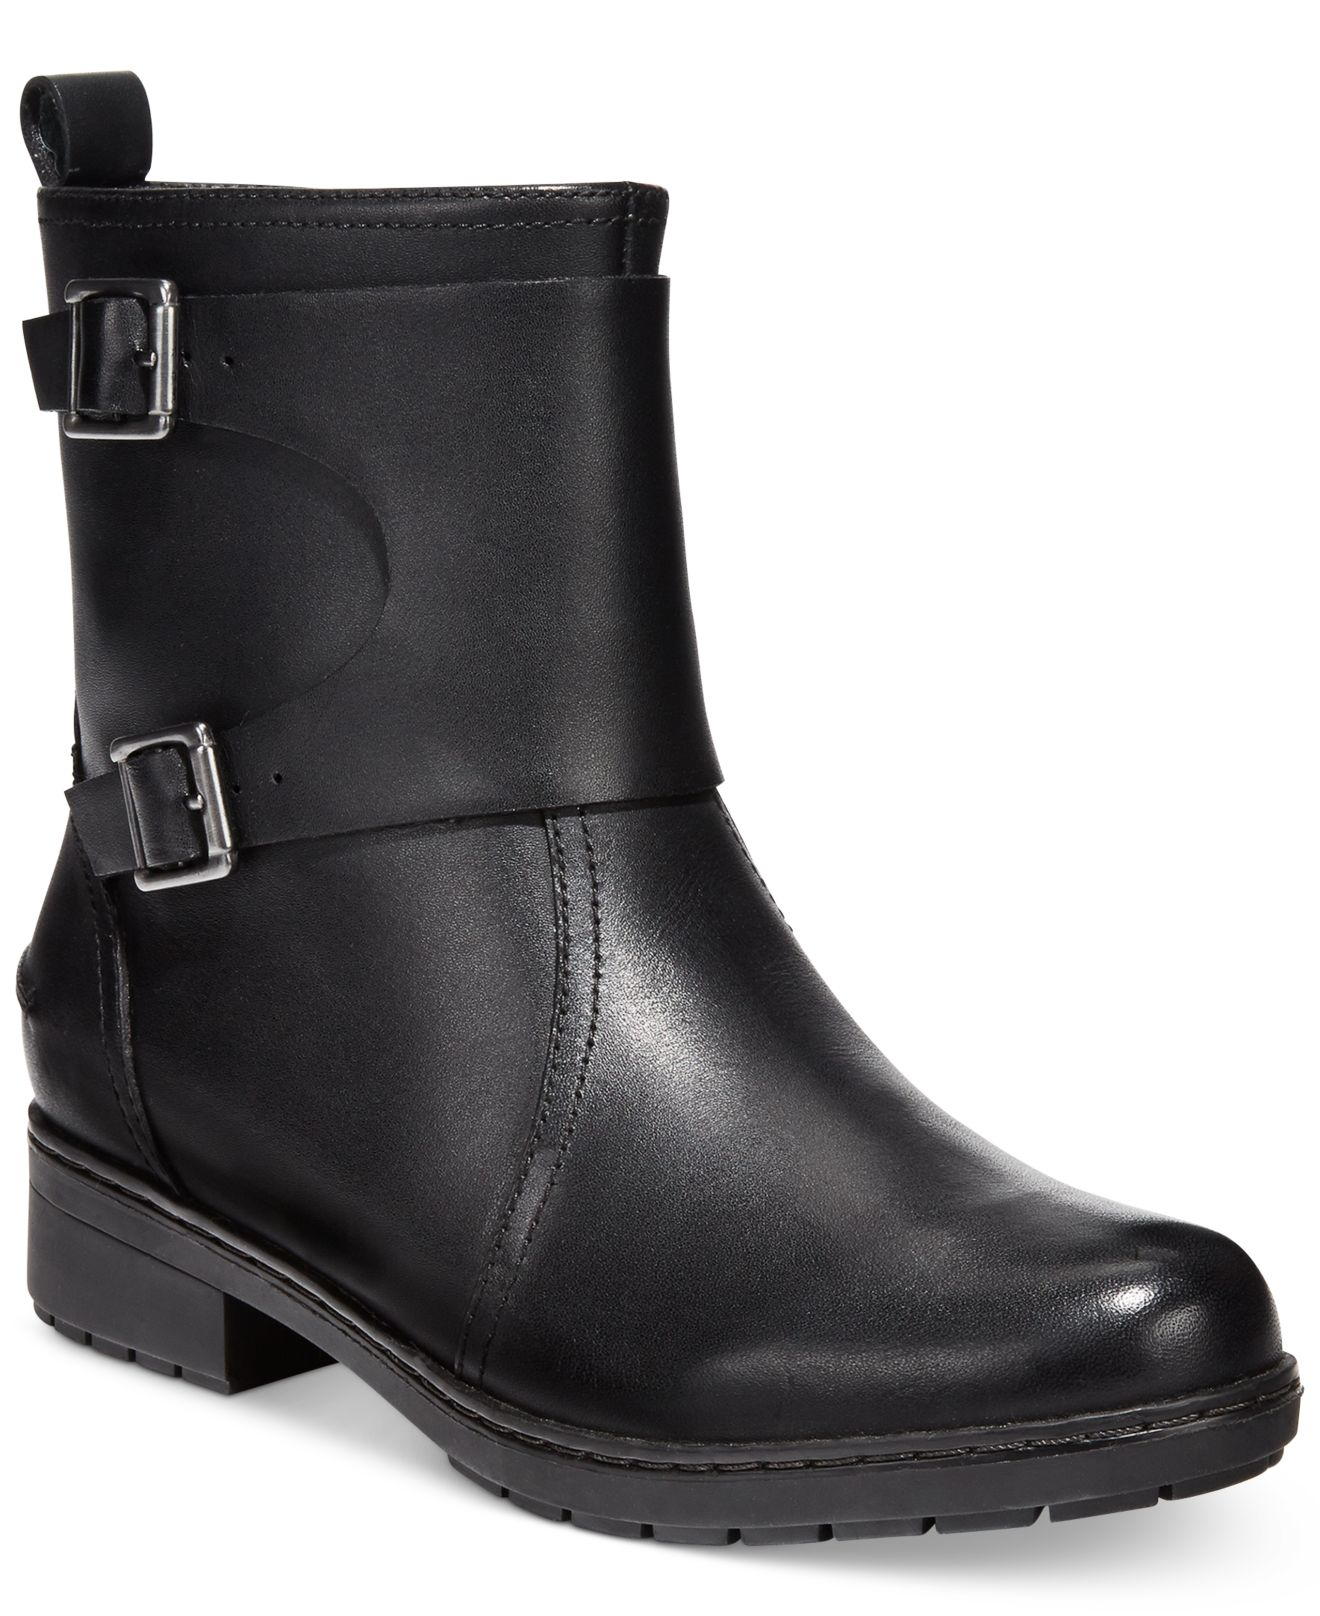 Lyst Clarks Collection Women S Merrian Betsy Mid Shaft